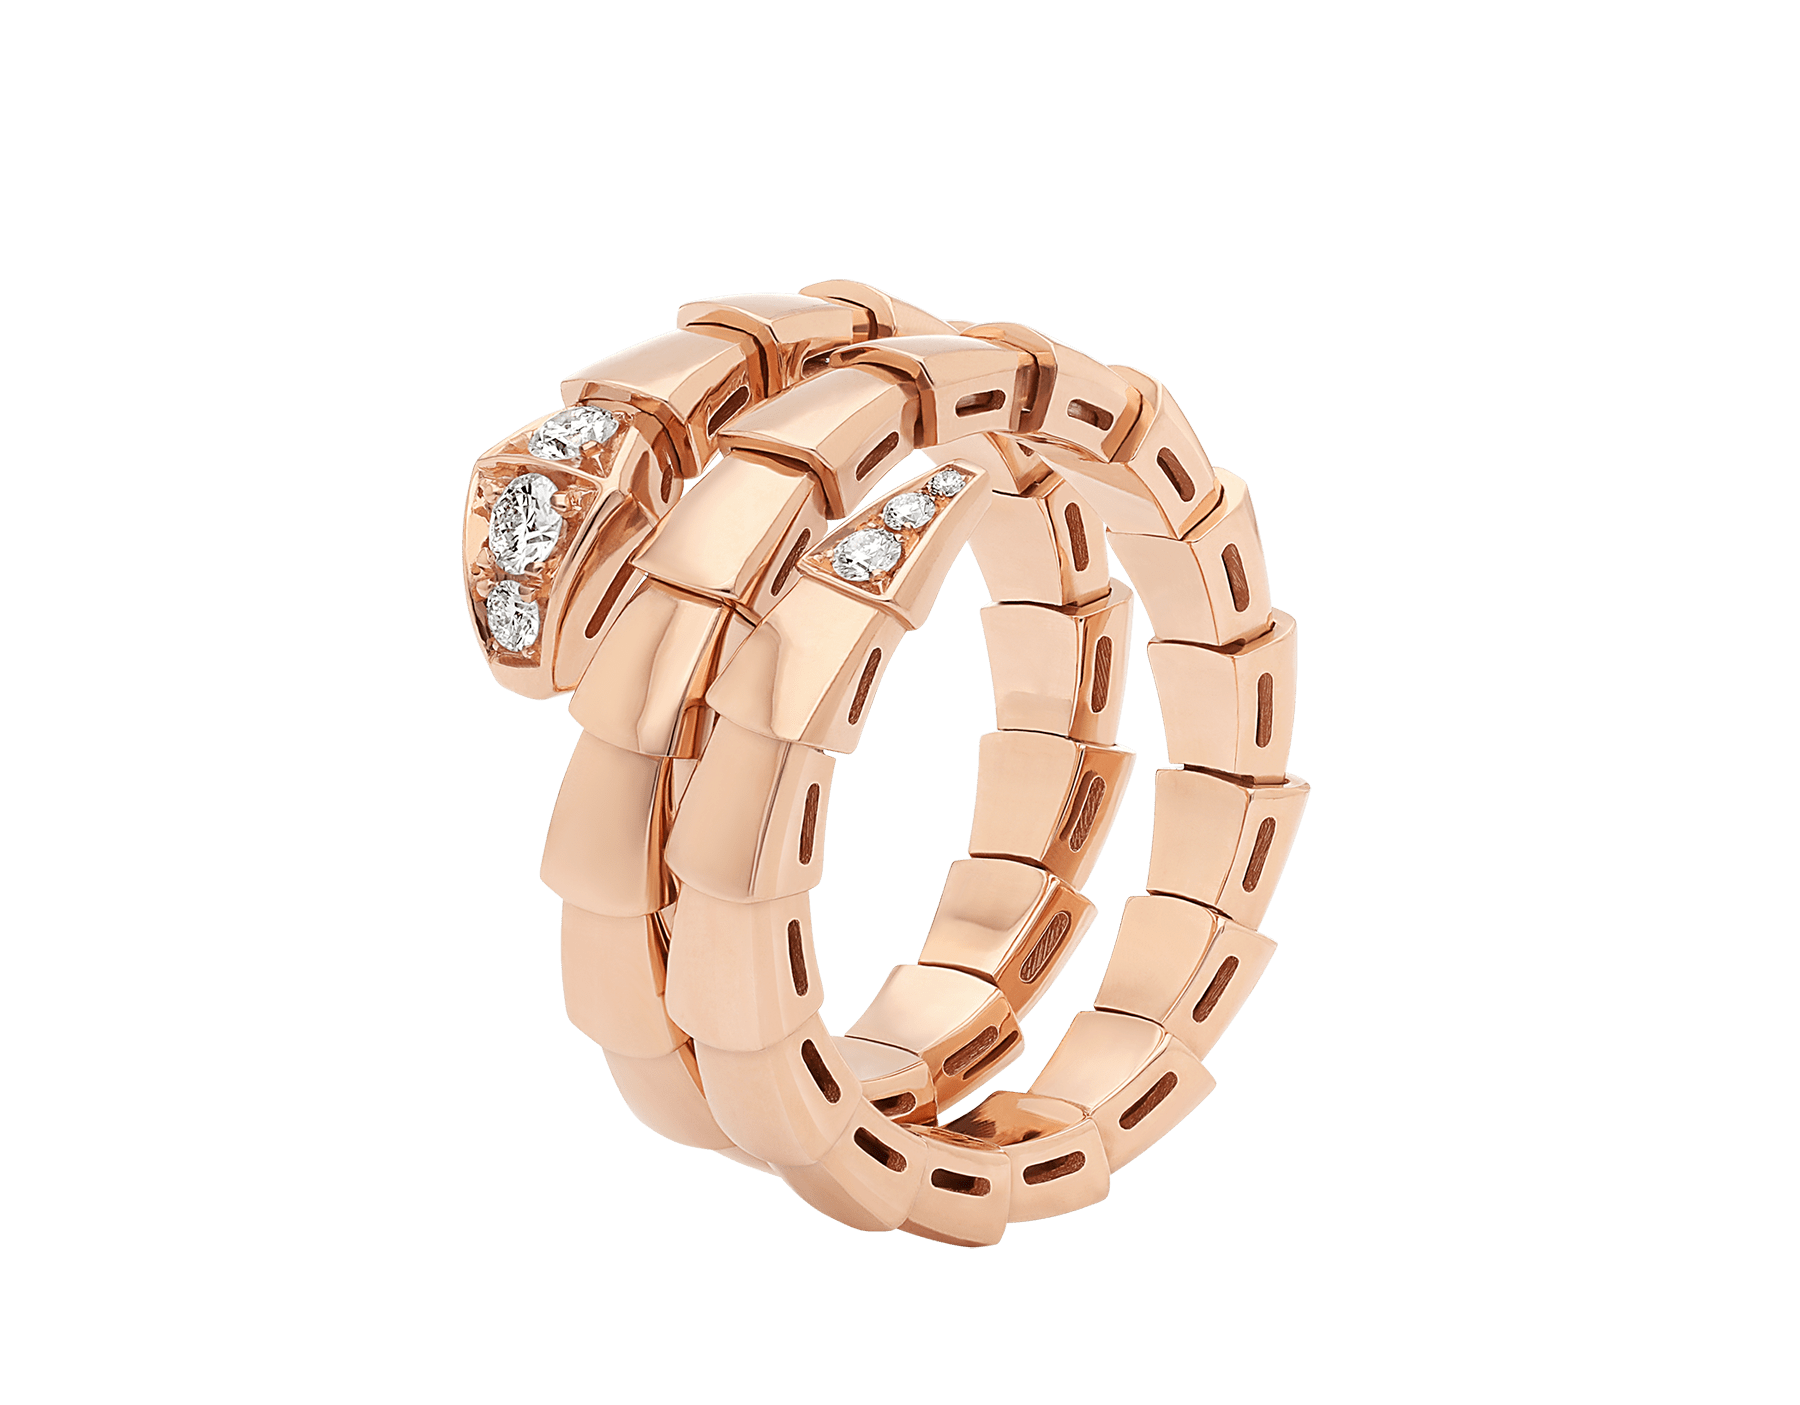 Serpenti Viper two-coil 18 kt rose gold ring, set with demi-pavé diamonds AN858824 image 1